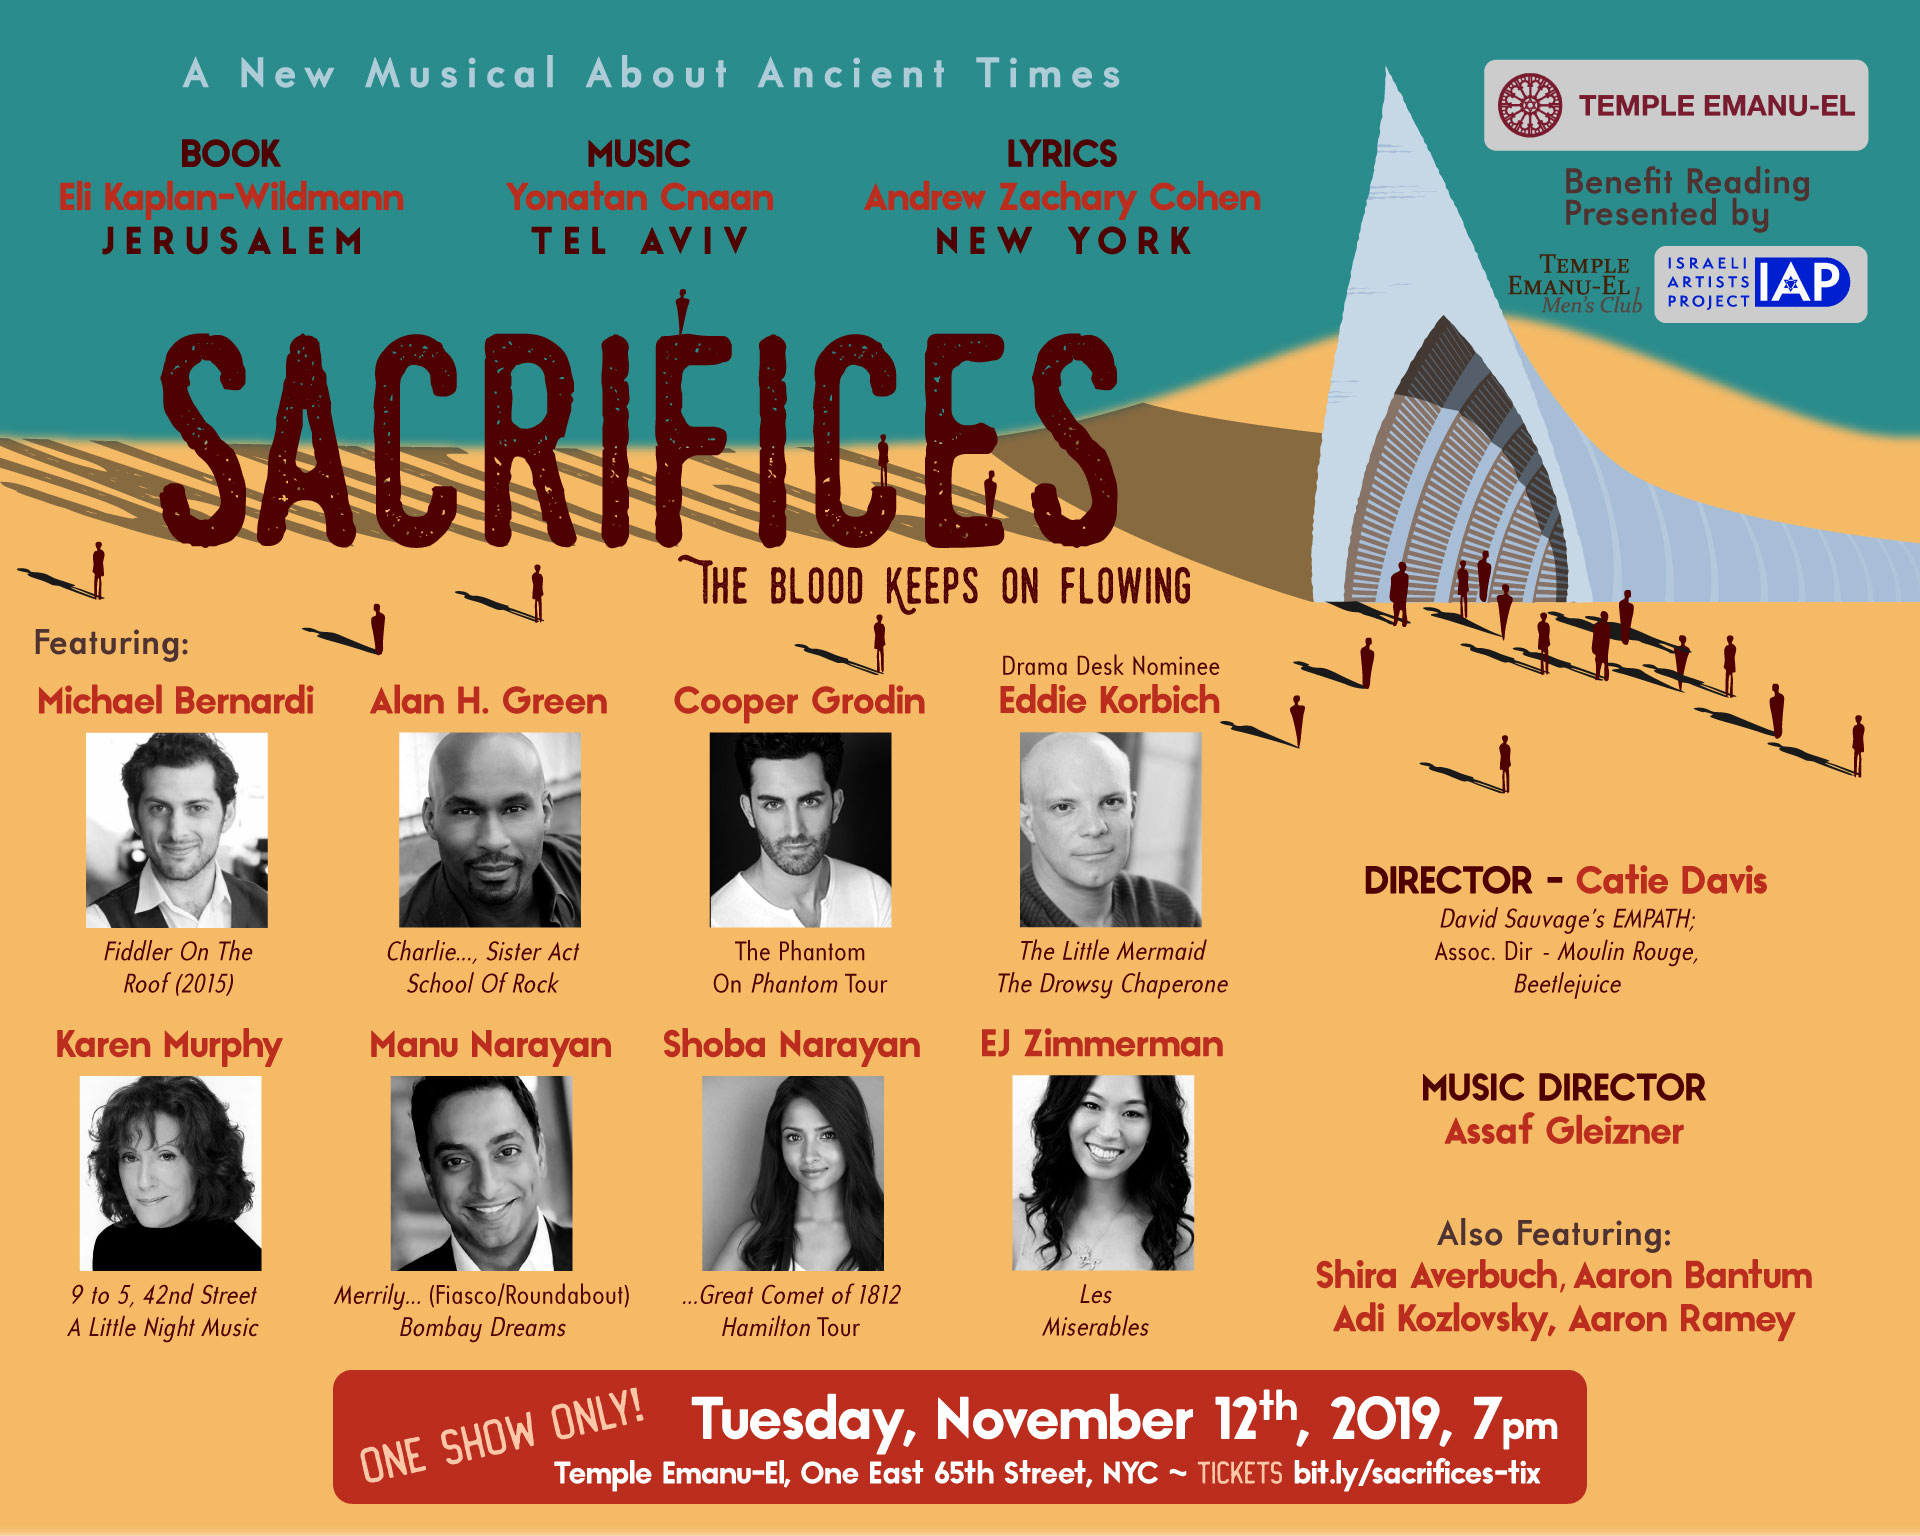 Benefit Reading Of The New Musical SACRIFICES to Feature Eddie Korbich, Shoba Narayan, and More